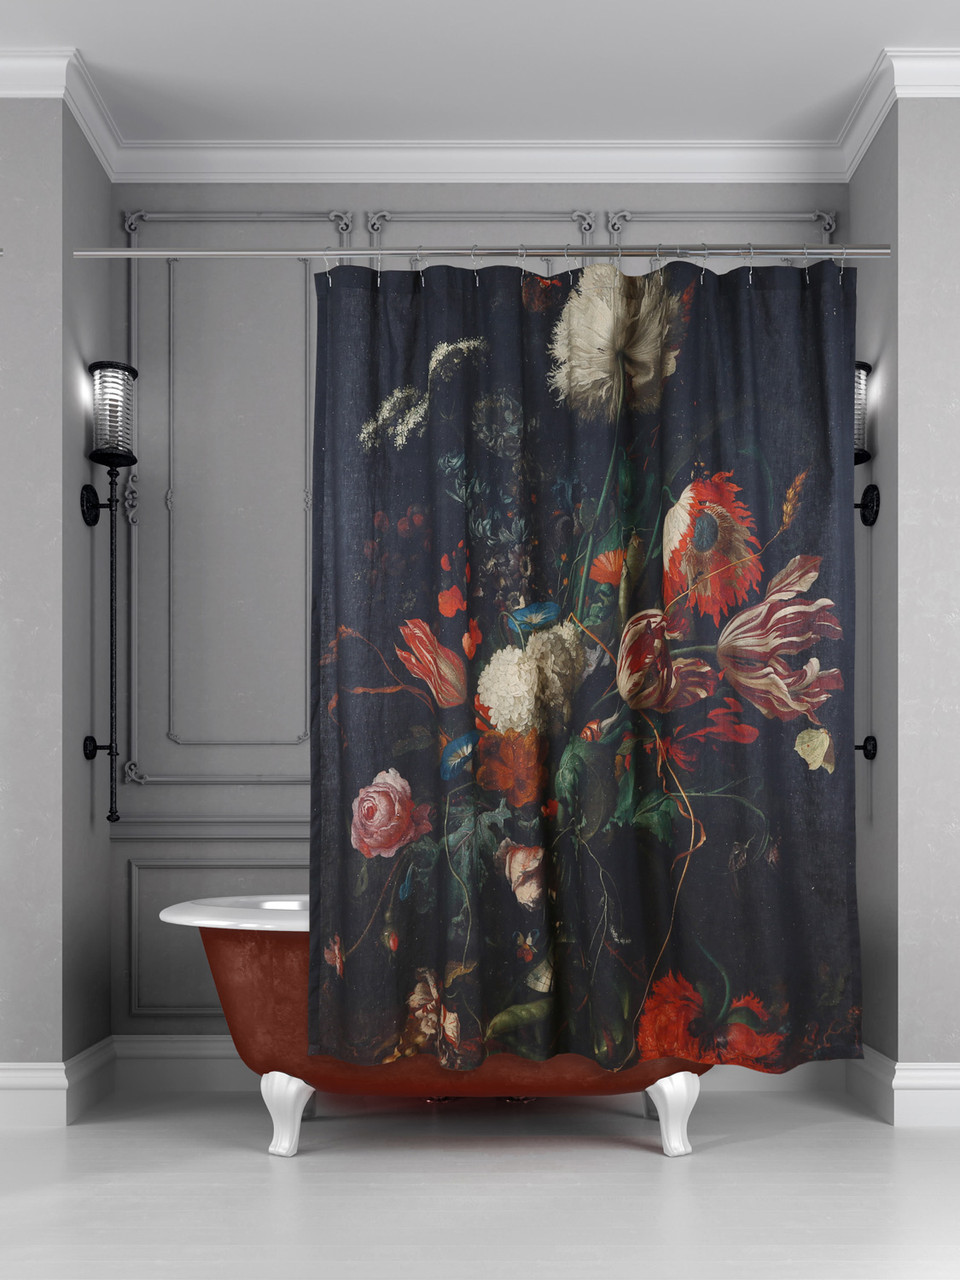 Museum Of Modern Art And Shower Curtains